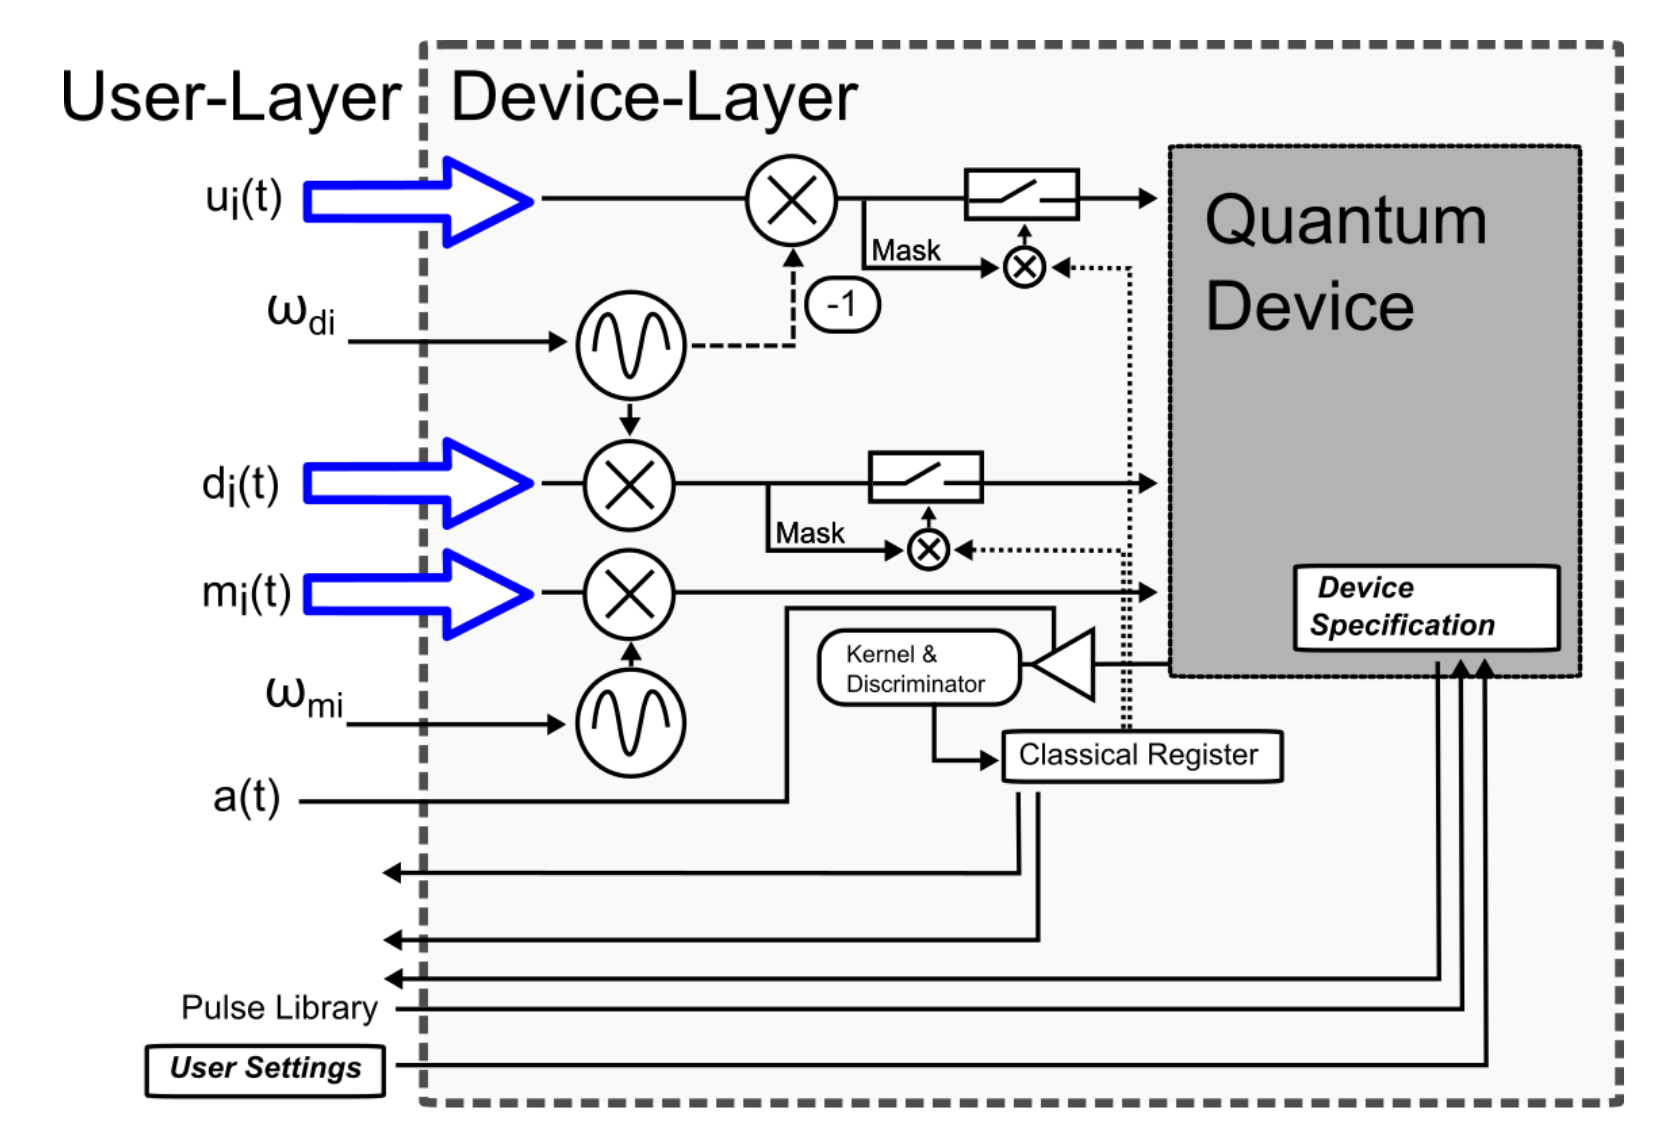 A diagram showing the various inputs and hardware required to connect Qiskit to a quantum device